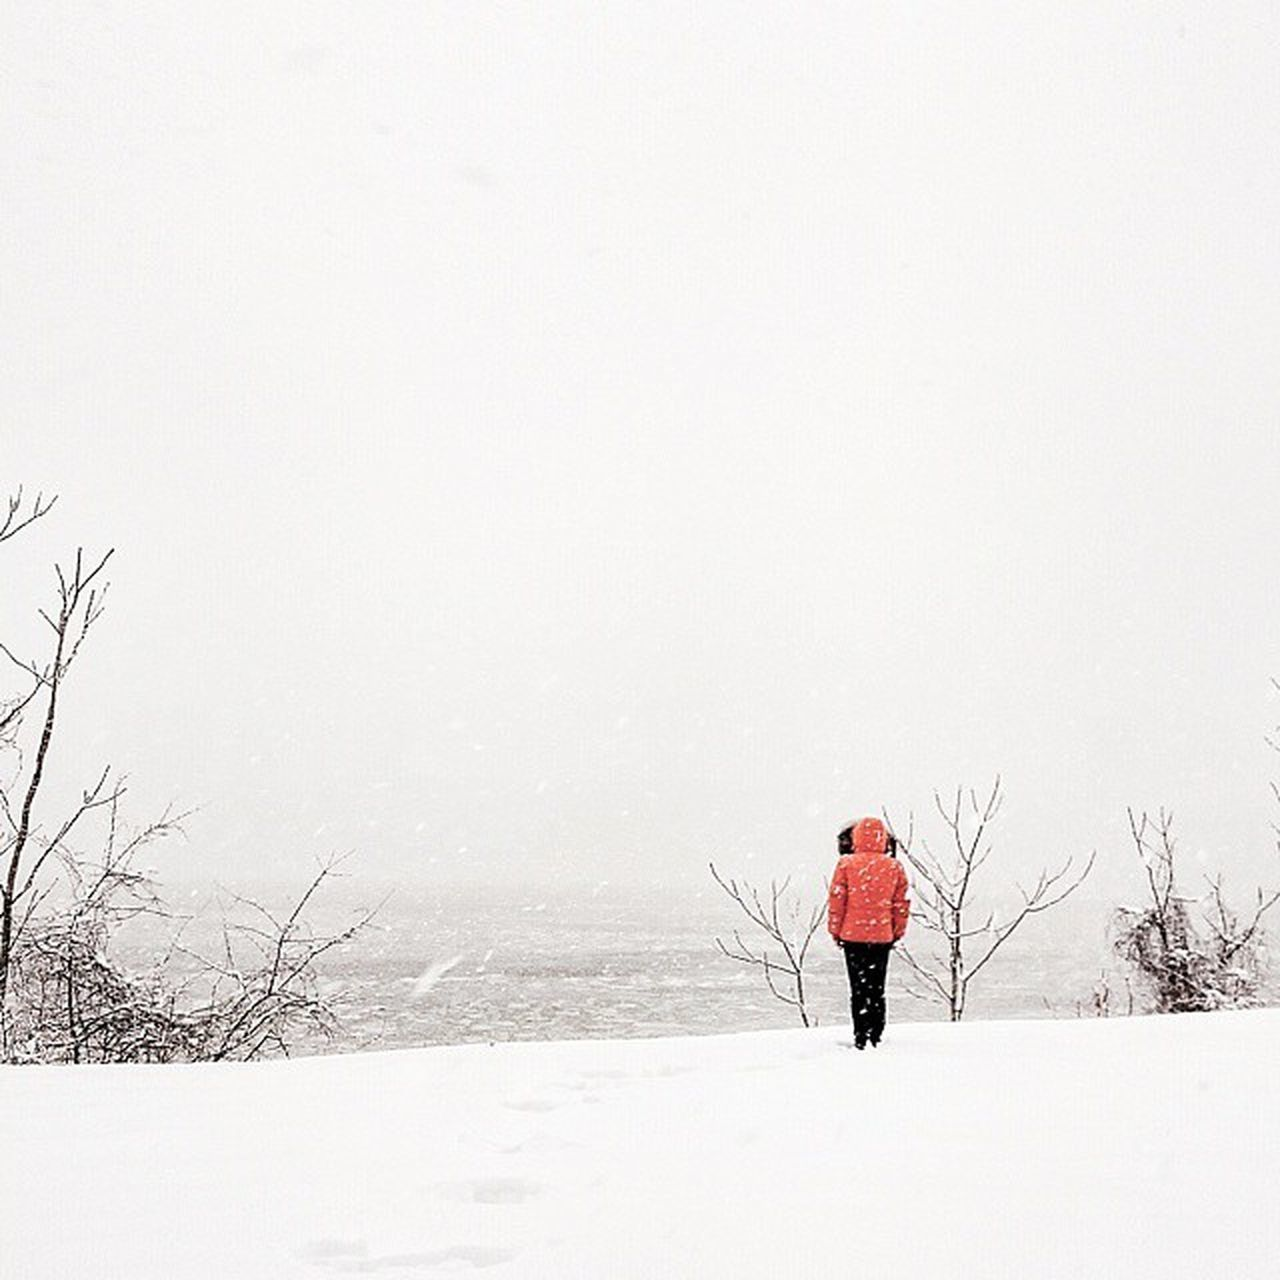 ice floe at hudson river Juno is back ❄ Negative Space The Best Of New York New York City Cityscapes NY Newyork NYC Streetphotography Newyorkcity Street Photography Snowing Snow Urban Street New York It's Cold Outside Winter